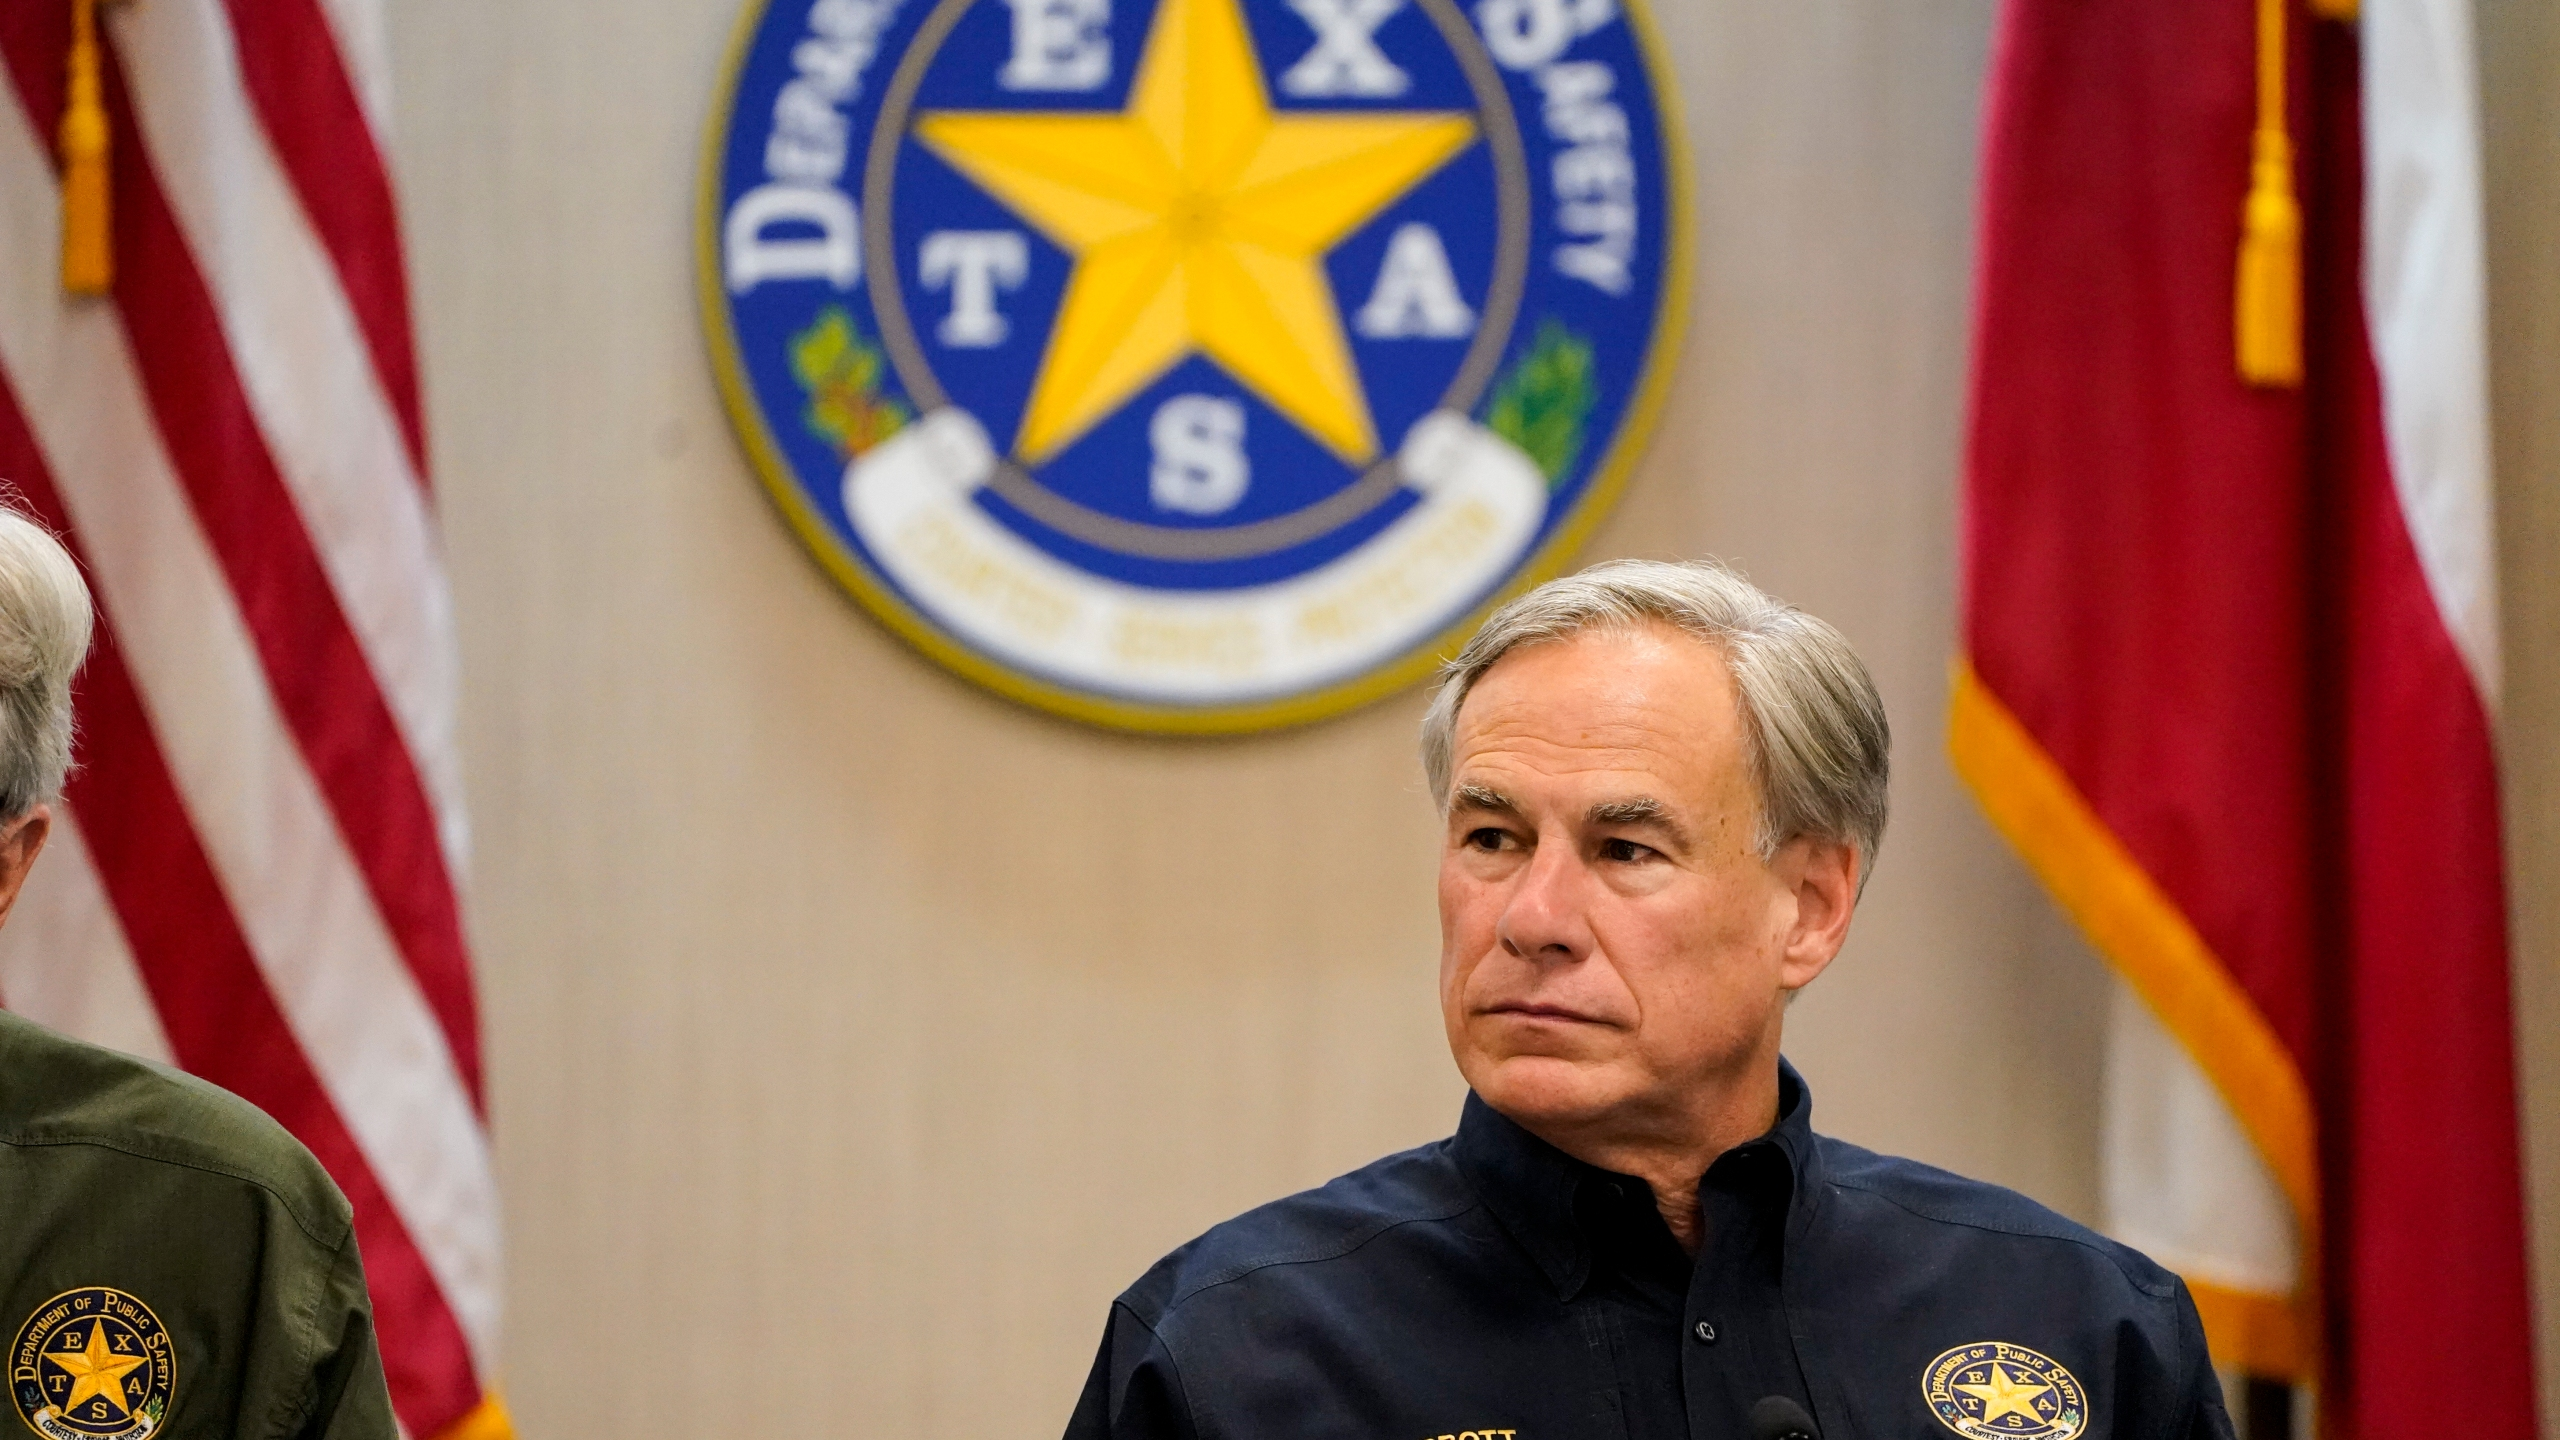 Texas Gov. Greg Abbott attends a security briefing at the Weslaco Department of Public Safety DPS Headquarters on Wednesday, June 30, 2021 in Weslaco, Texas. (Jabin Botsford/The Washington Post via AP, Pool)